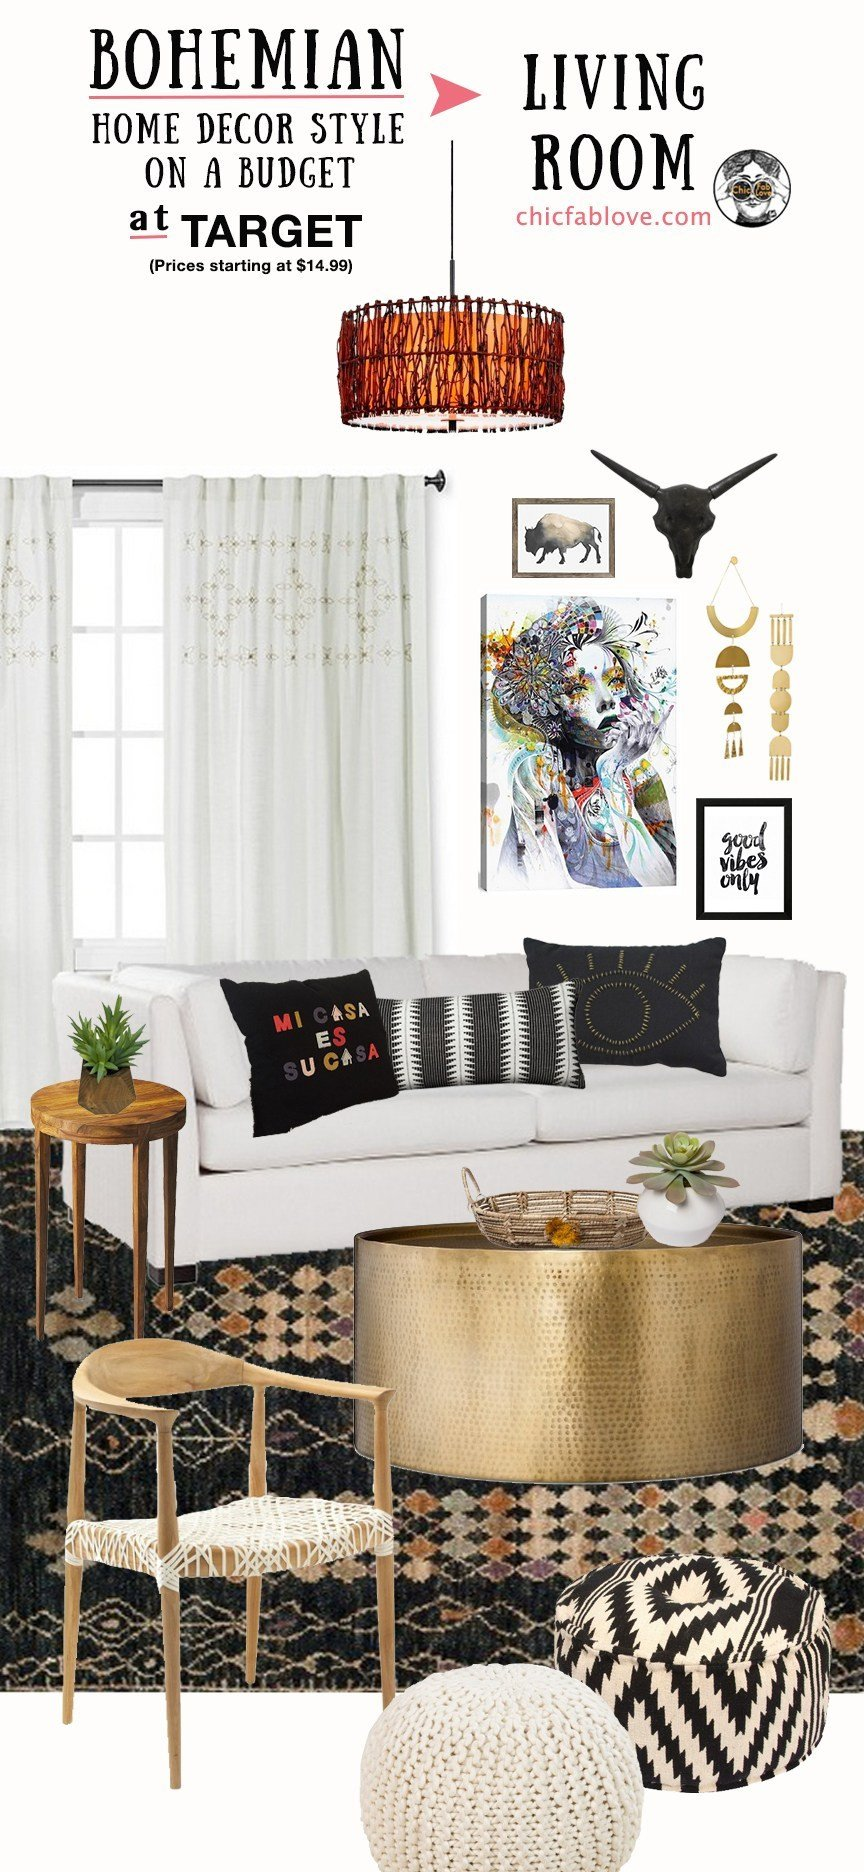 Bohemian Decor On A Budget Awesome Bohemian Home Decor Style On A Bud at Tar Chic Fab Love